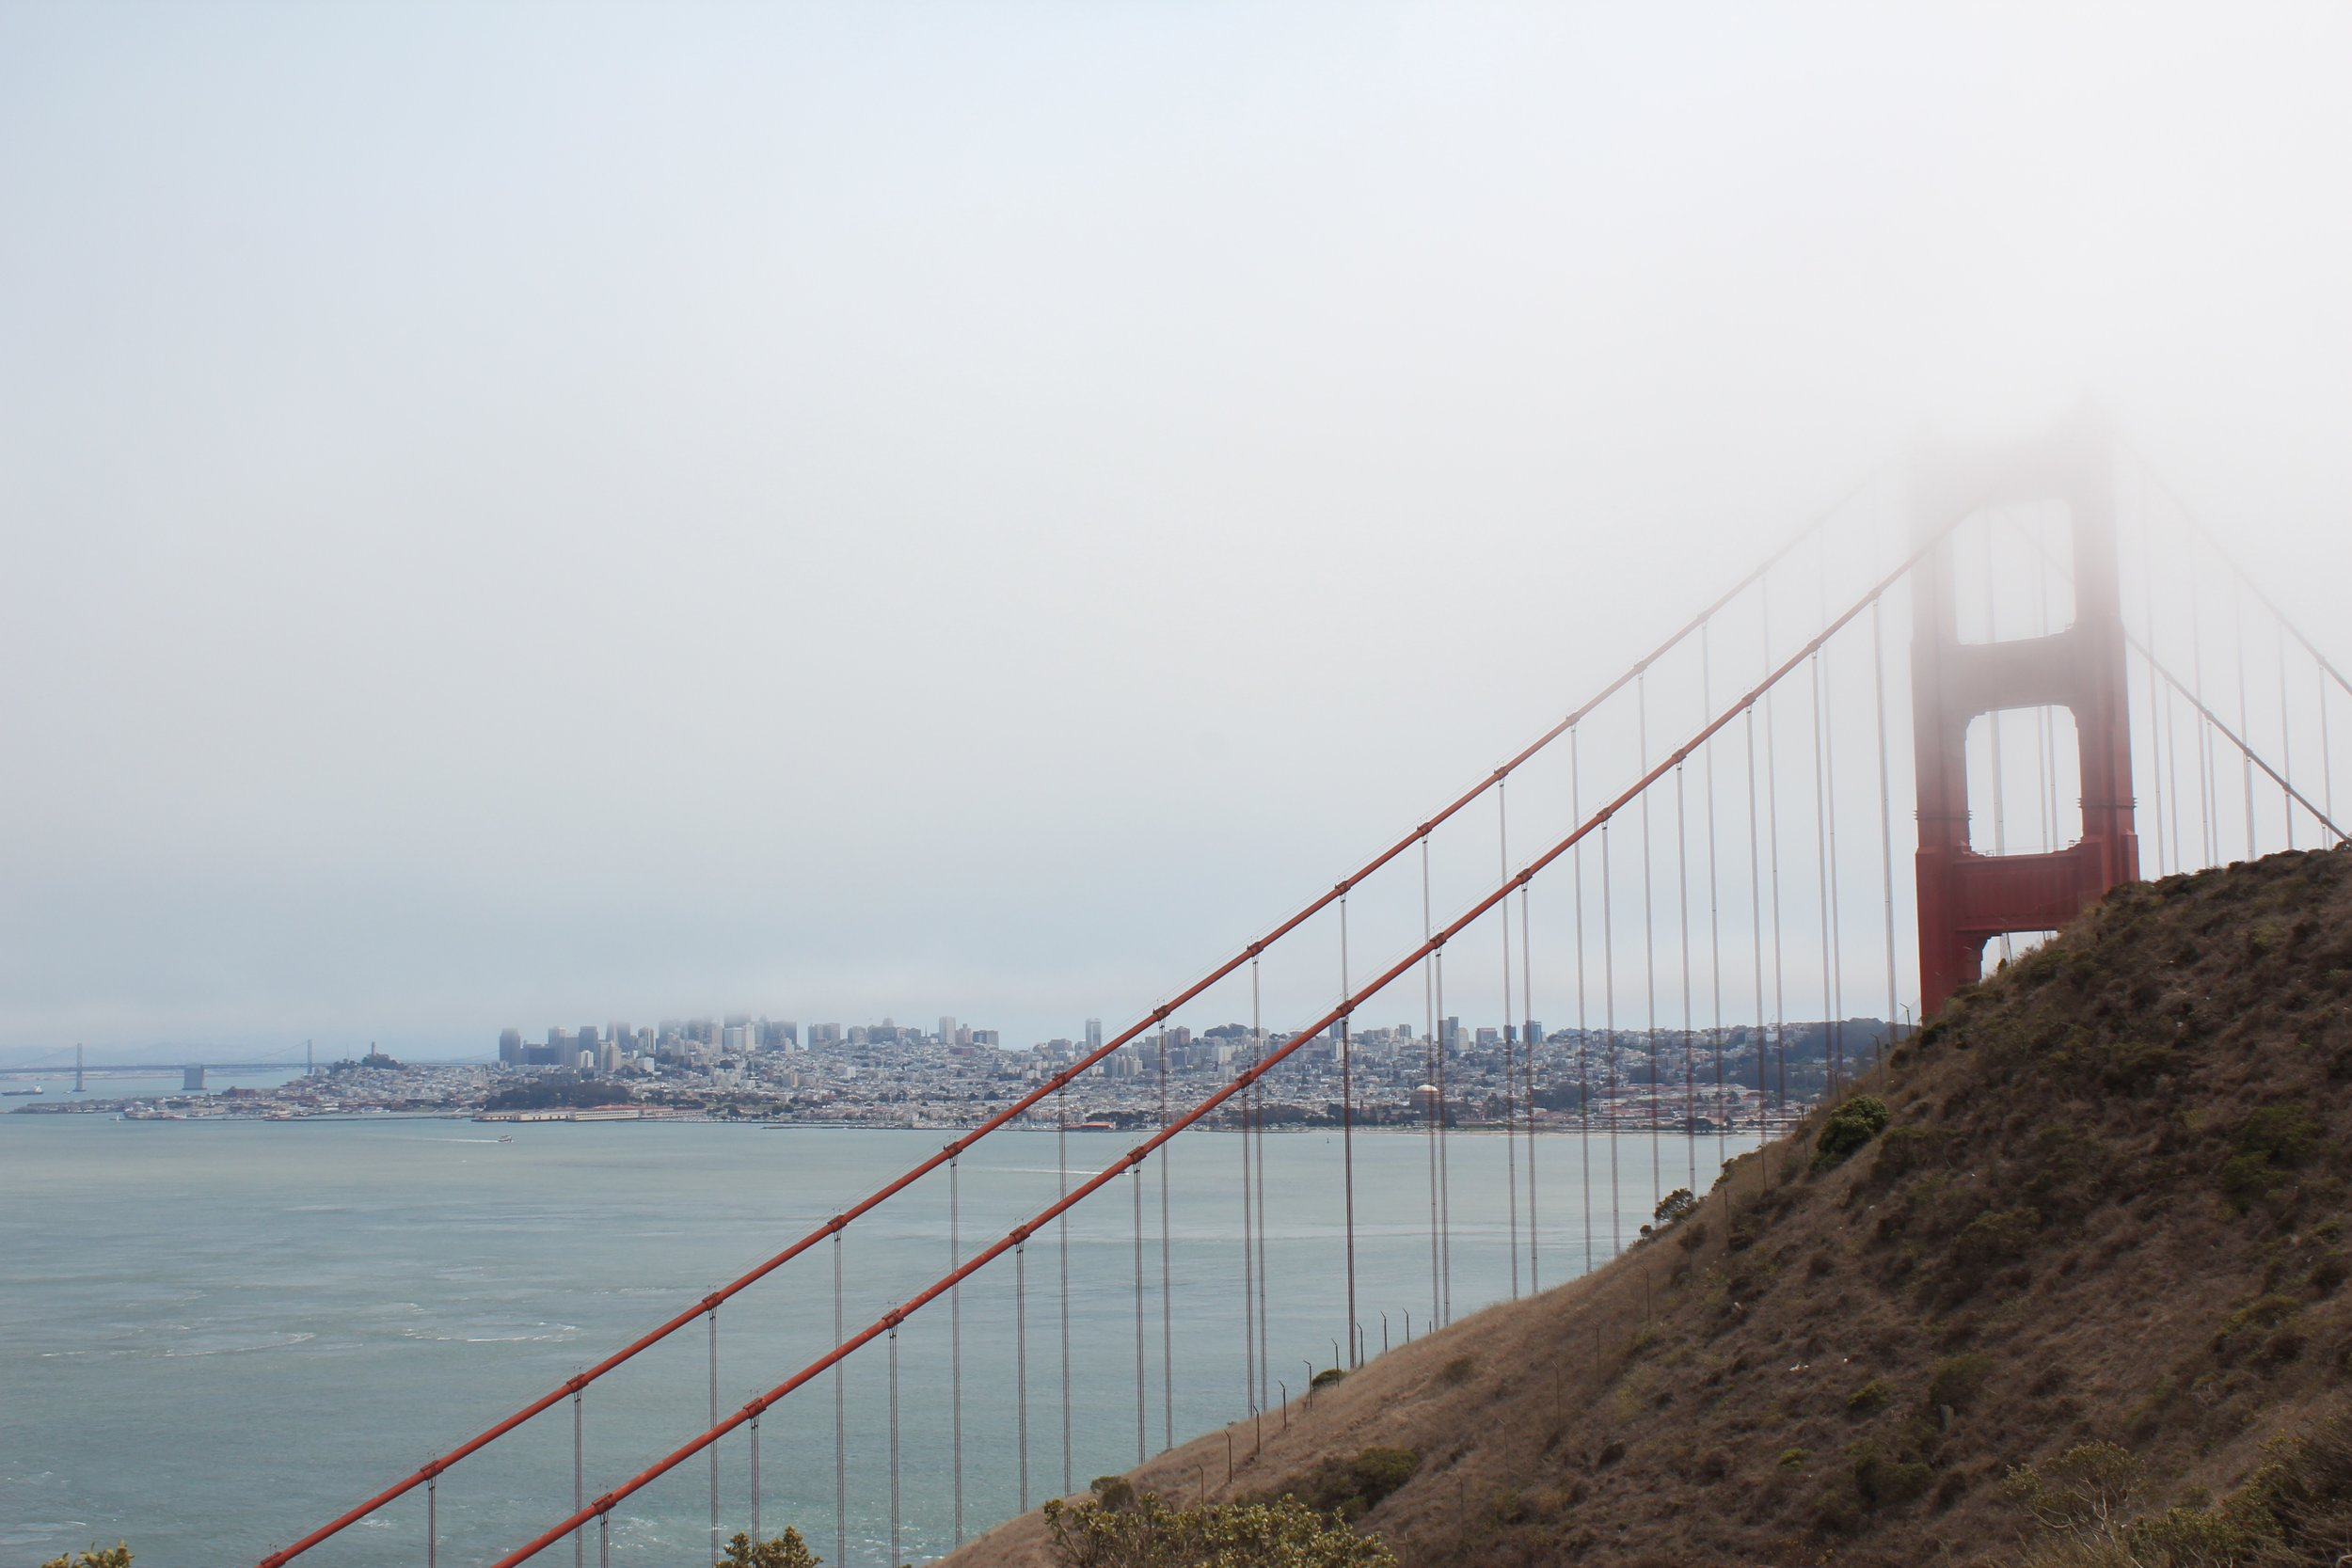 San Francisco skyline views from Marin Headlands. See our  TBP insider tips  for how to get this view!